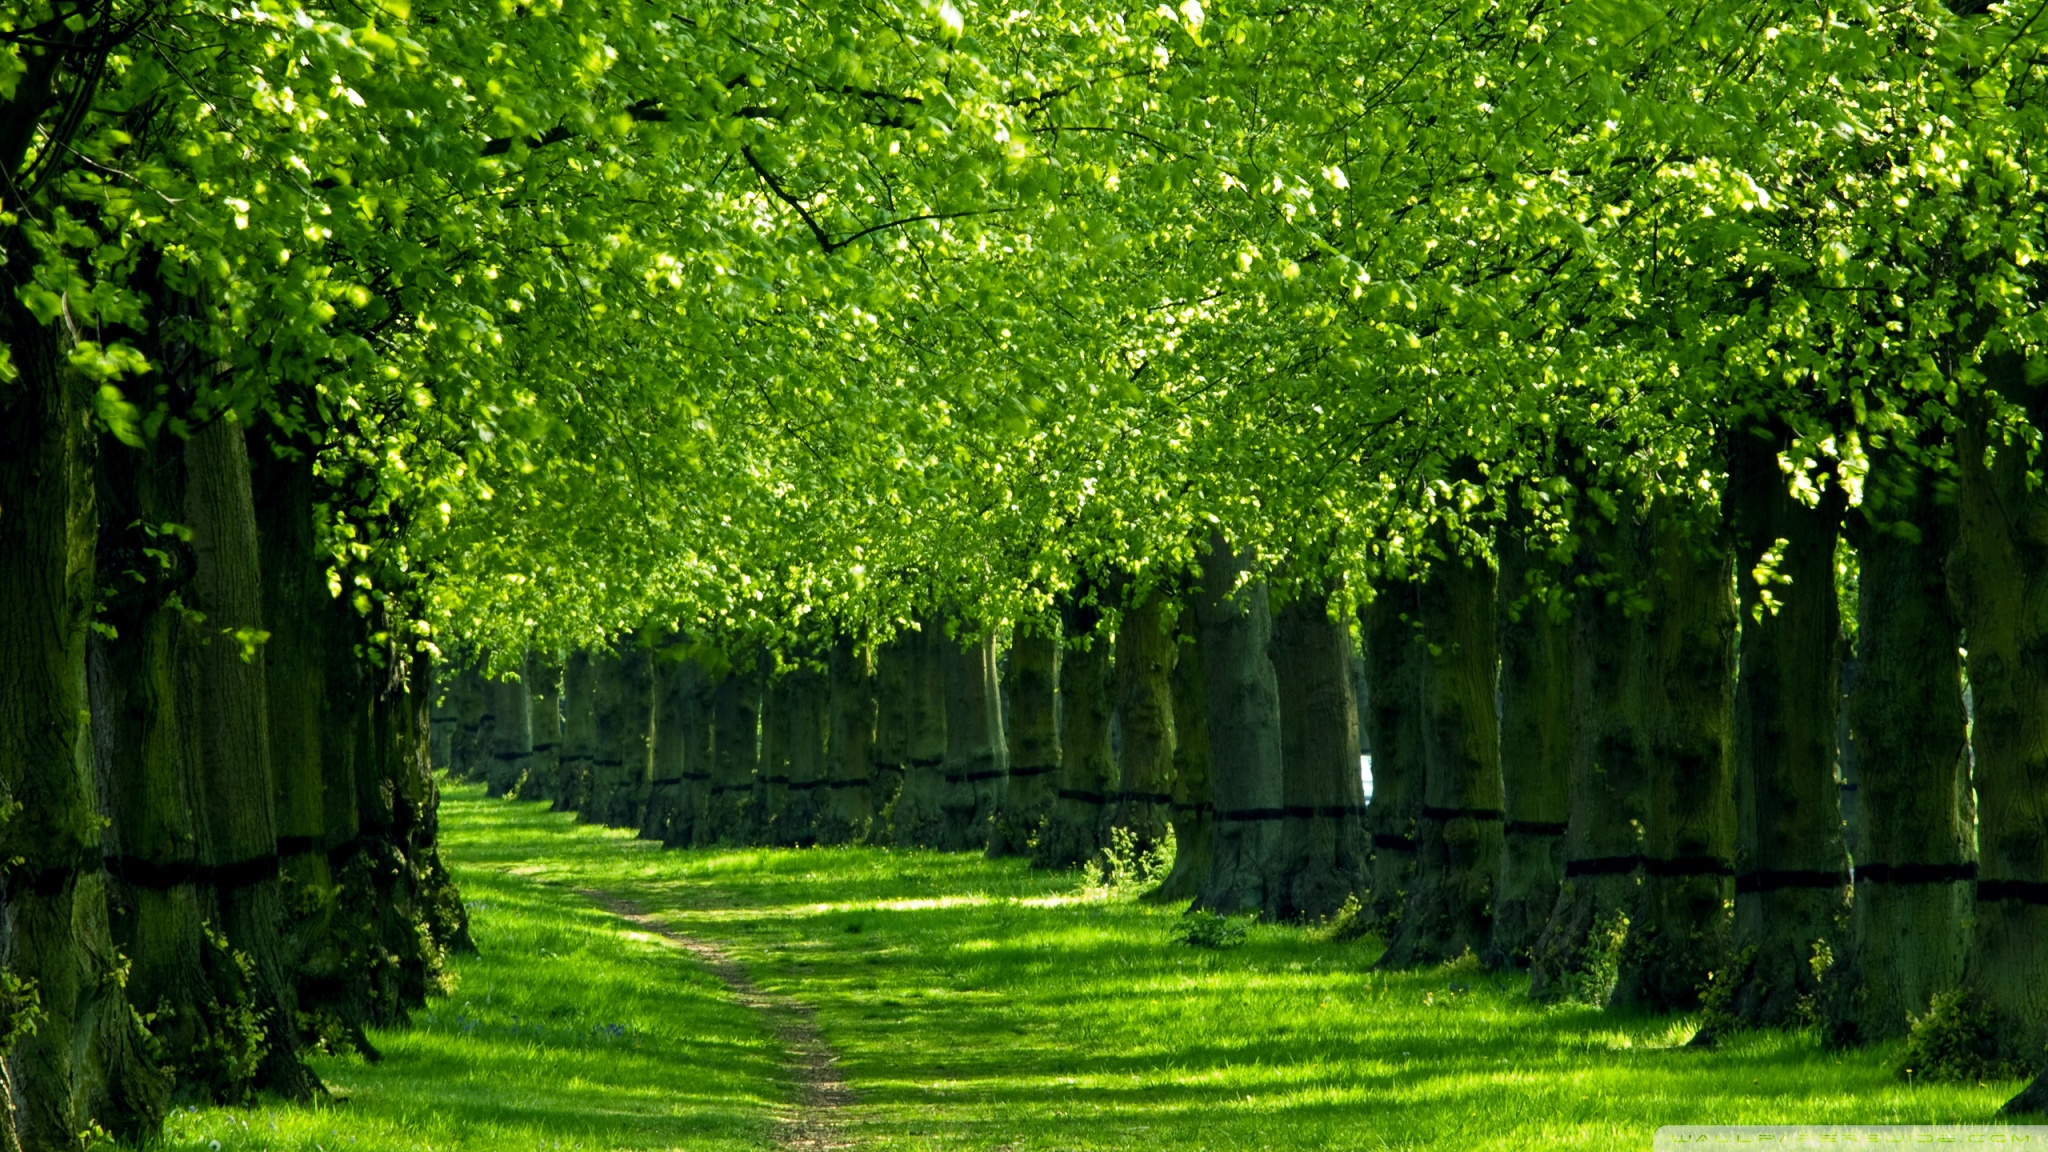 HD Wallpapers Of Trees